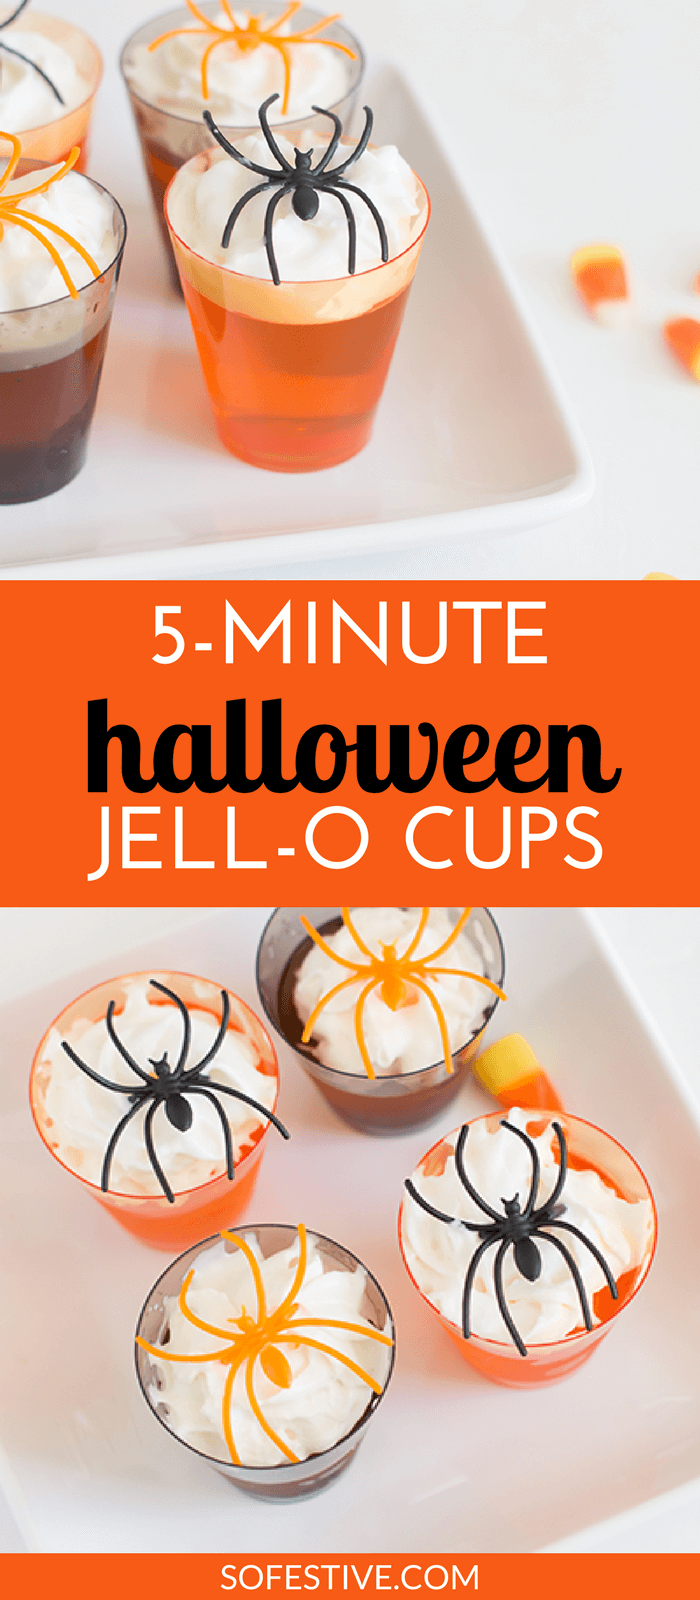 5-Minute Halloween Jello Spider Shots - So Festive! #halloweenjelloshots